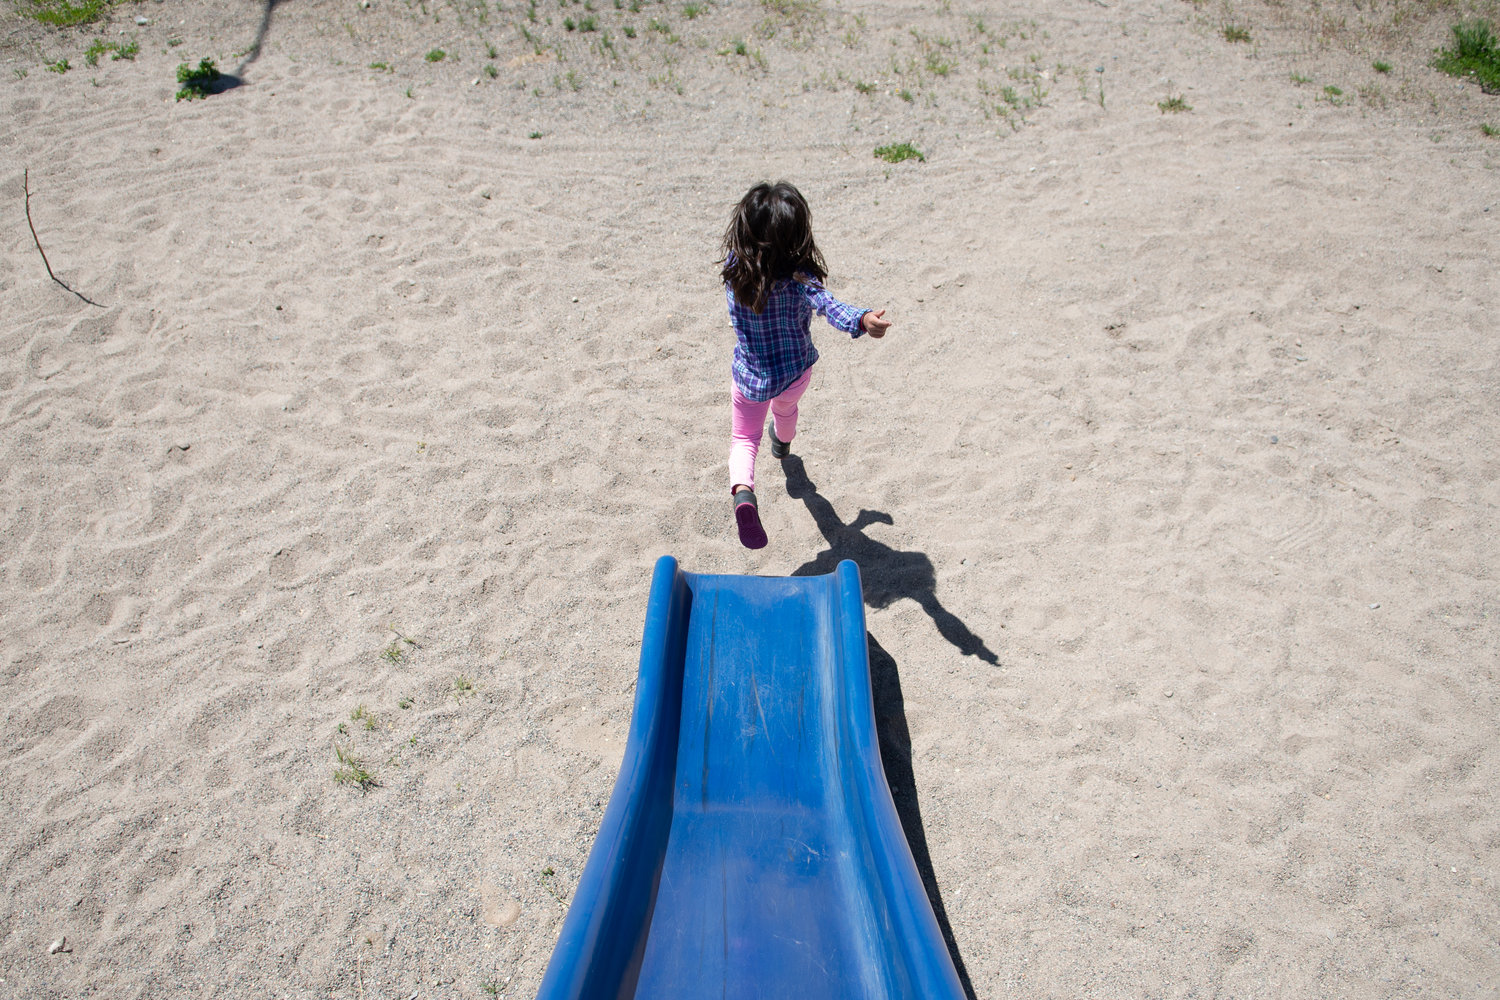 A student at the Crowheart School in Crowheart, Wyoming, jumps off the slider during recess on May 31, 2016. Crowheart is located in Fremont County School District No. 6, which covers 1,300 square miles and contains no licensed day care facilities, medical service providers or private pre-schools.